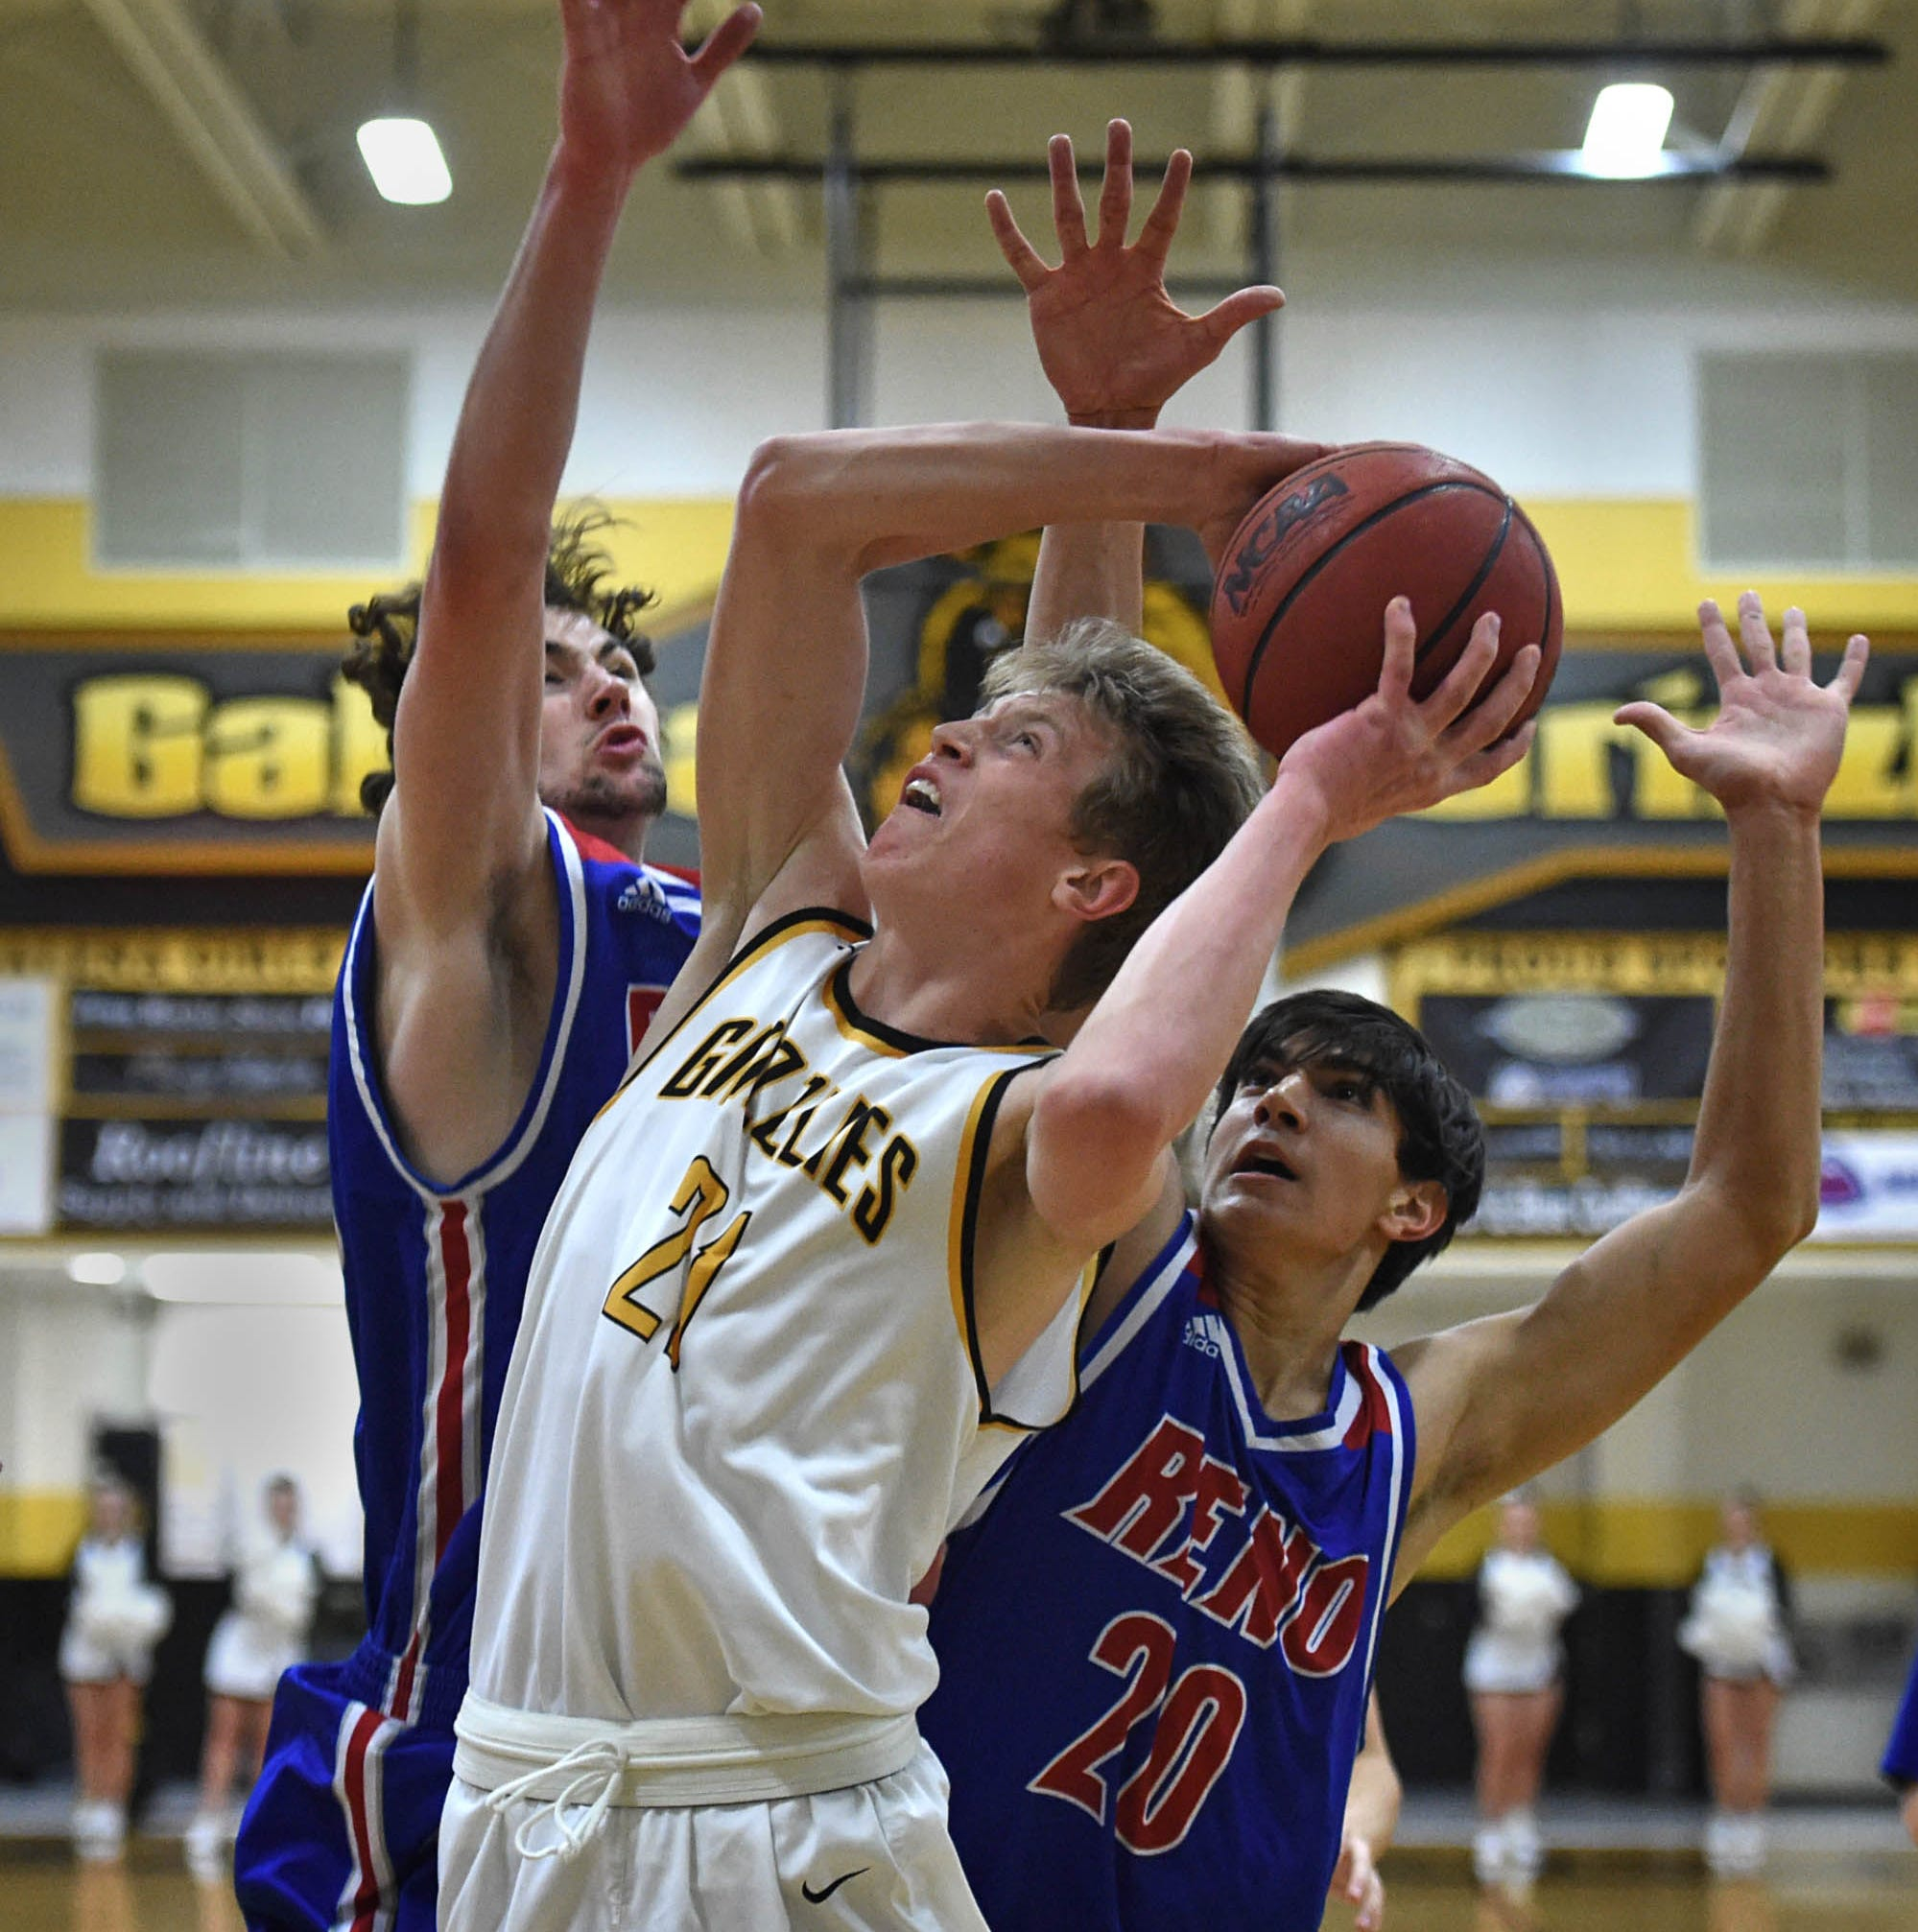 Boys basketball: Top seeds all hold serve in North 4A Regionals